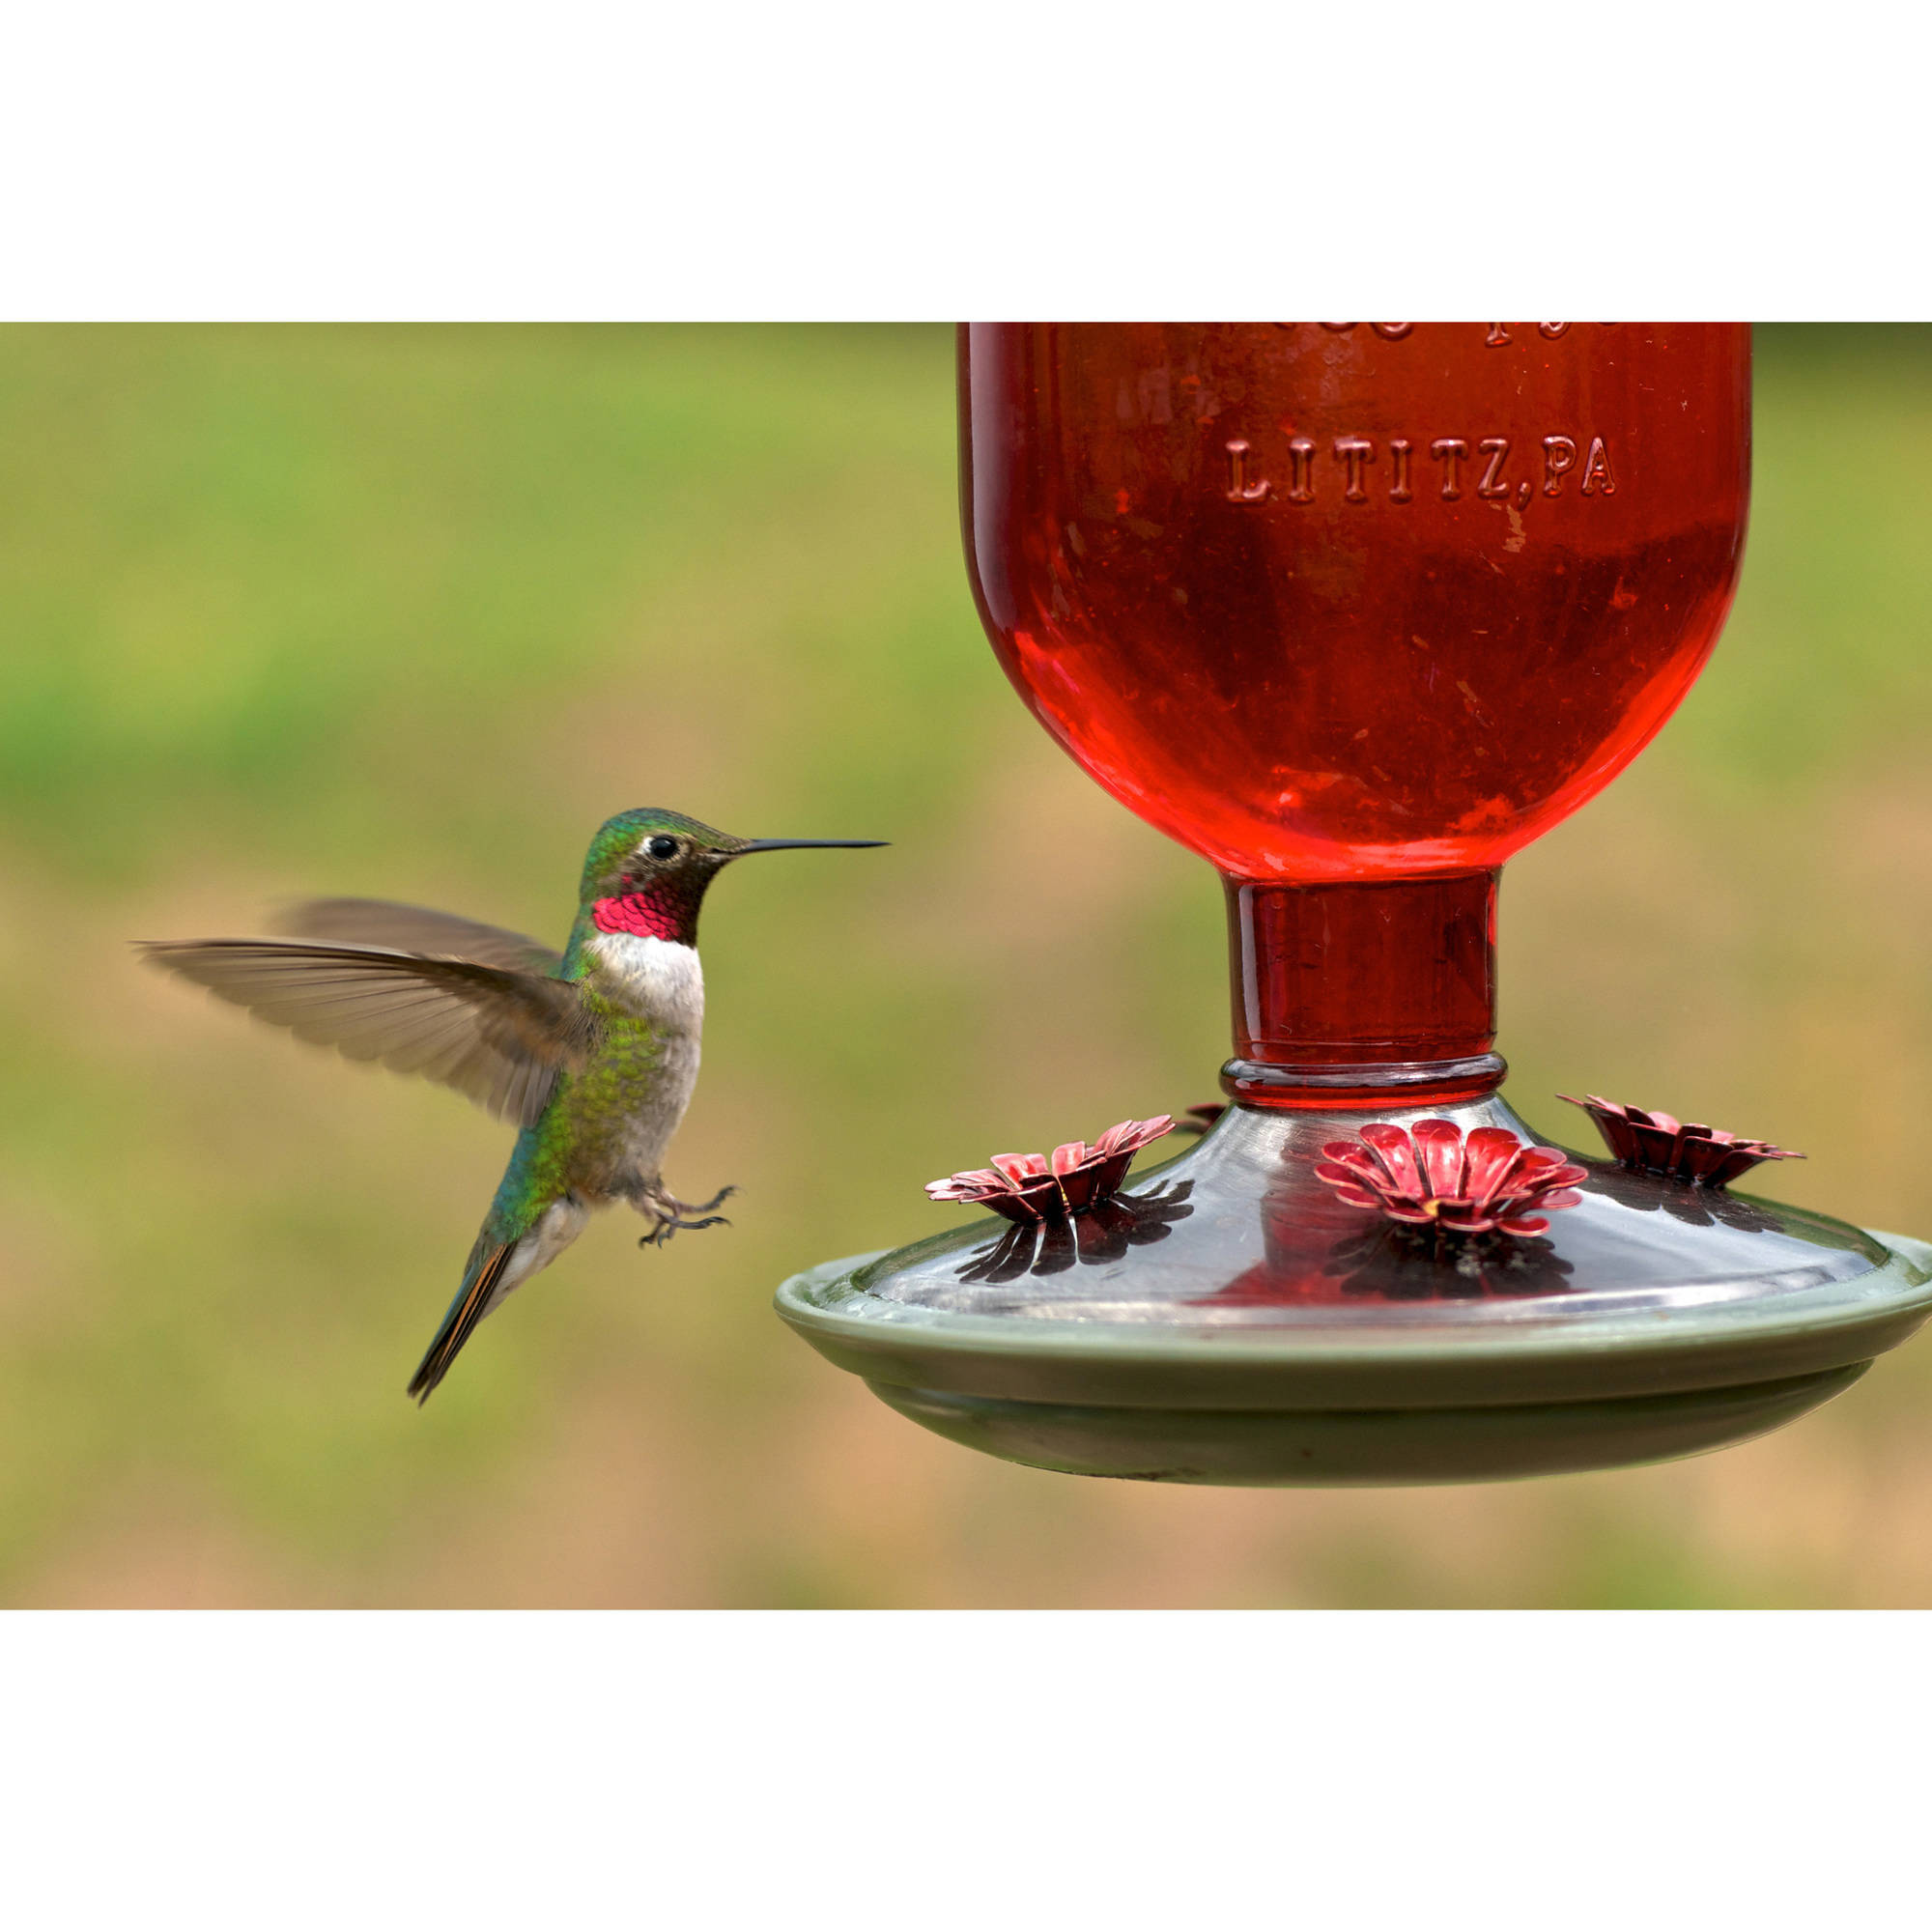 pennington com feeders walmart feeder glass oz hummingbird ip decorative